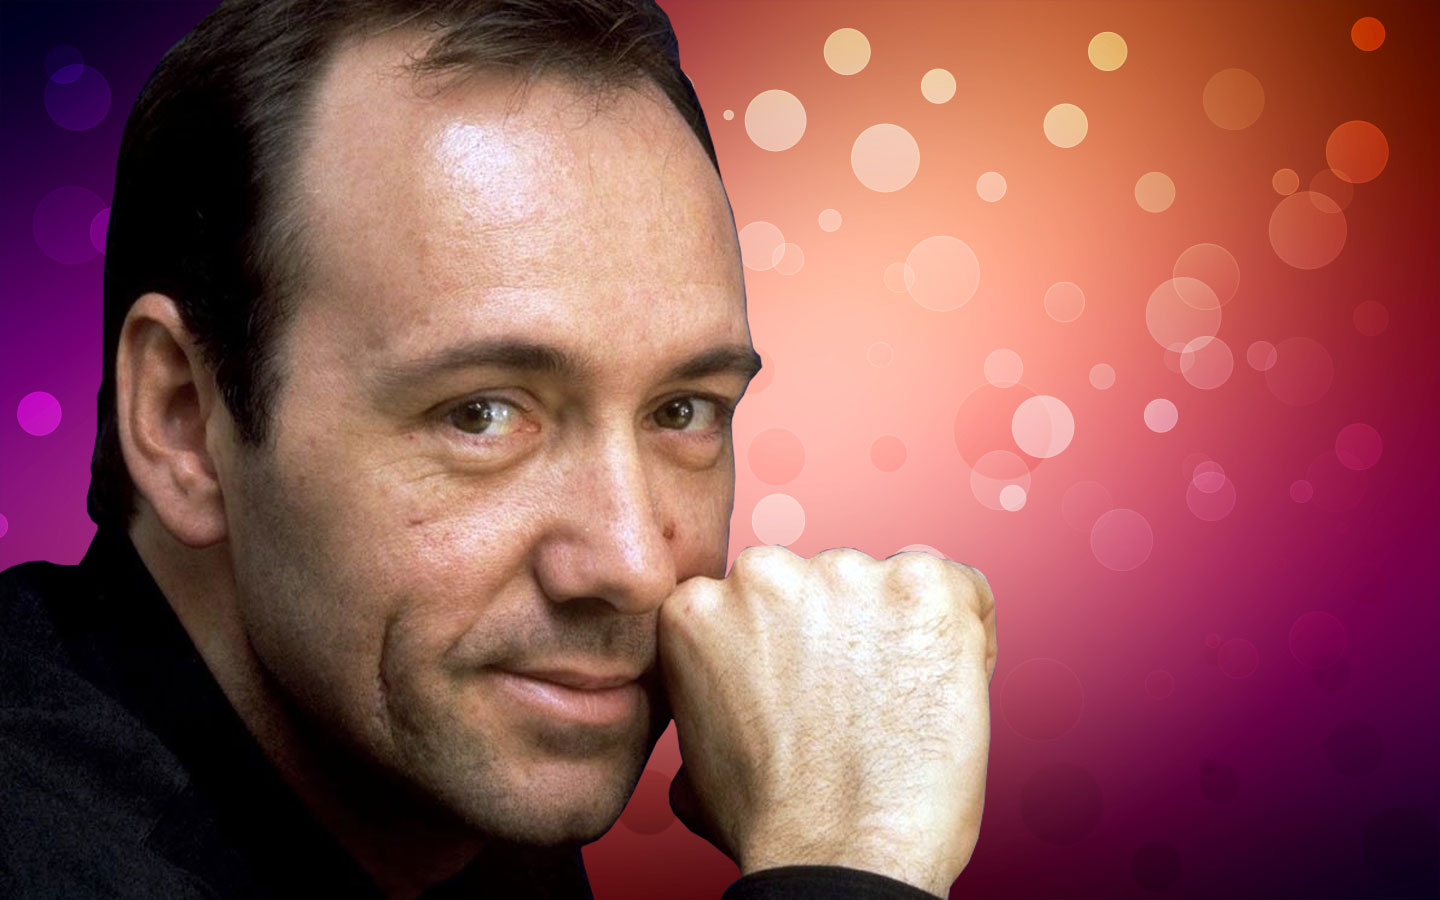 kevin spacey - HD 1440×900